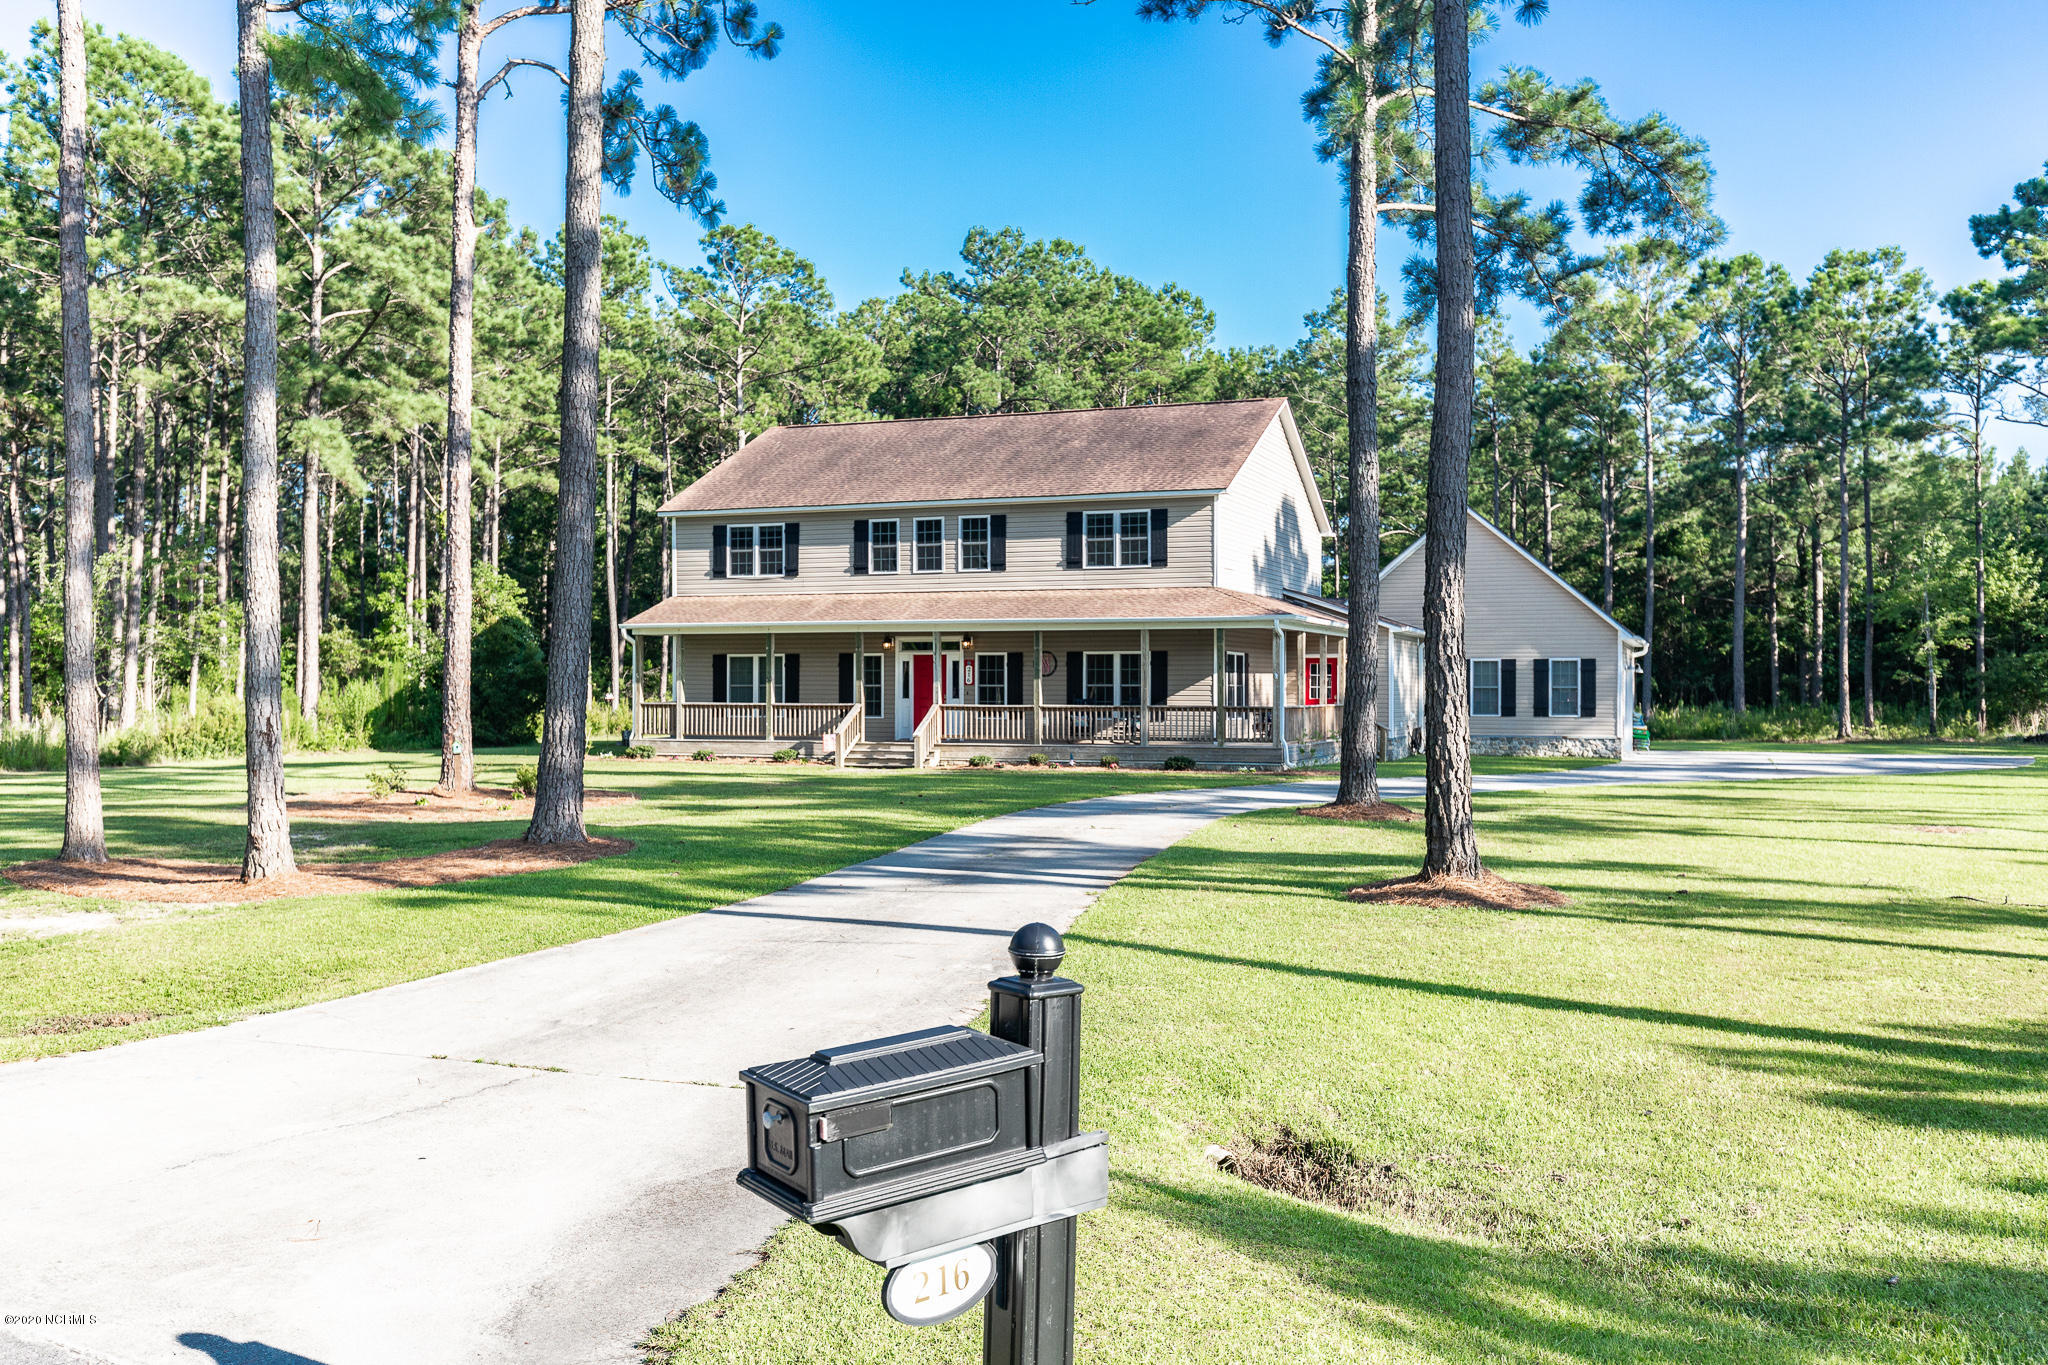 216 Brittany Lane, Stella, North Carolina 28582, 4 Bedrooms Bedrooms, ,3 BathroomsBathrooms,Residential,For Sale,Brittany,100226946